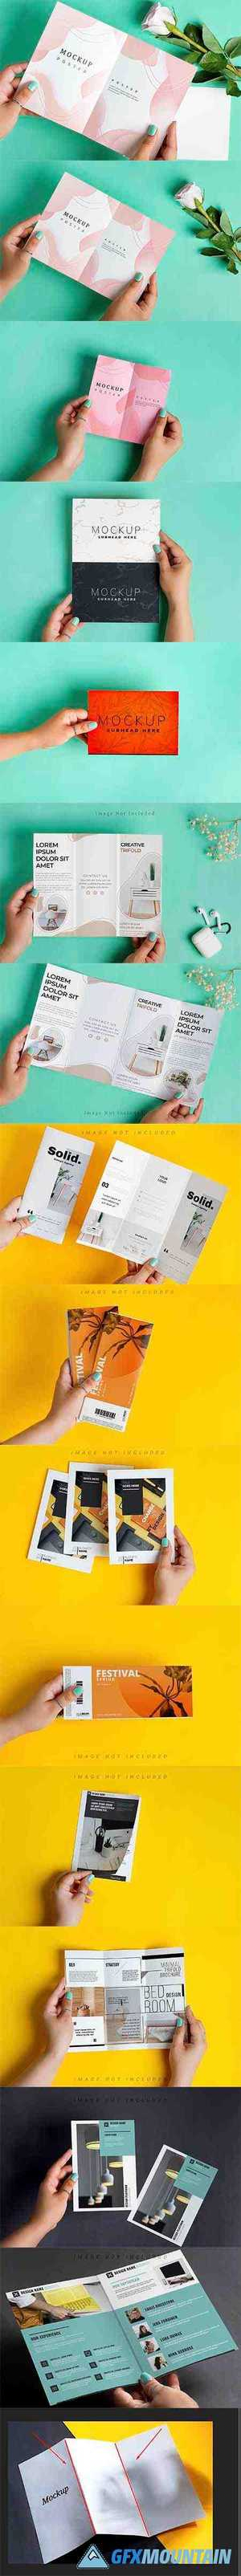 Brochure Mockup in Hand Kit 5204874